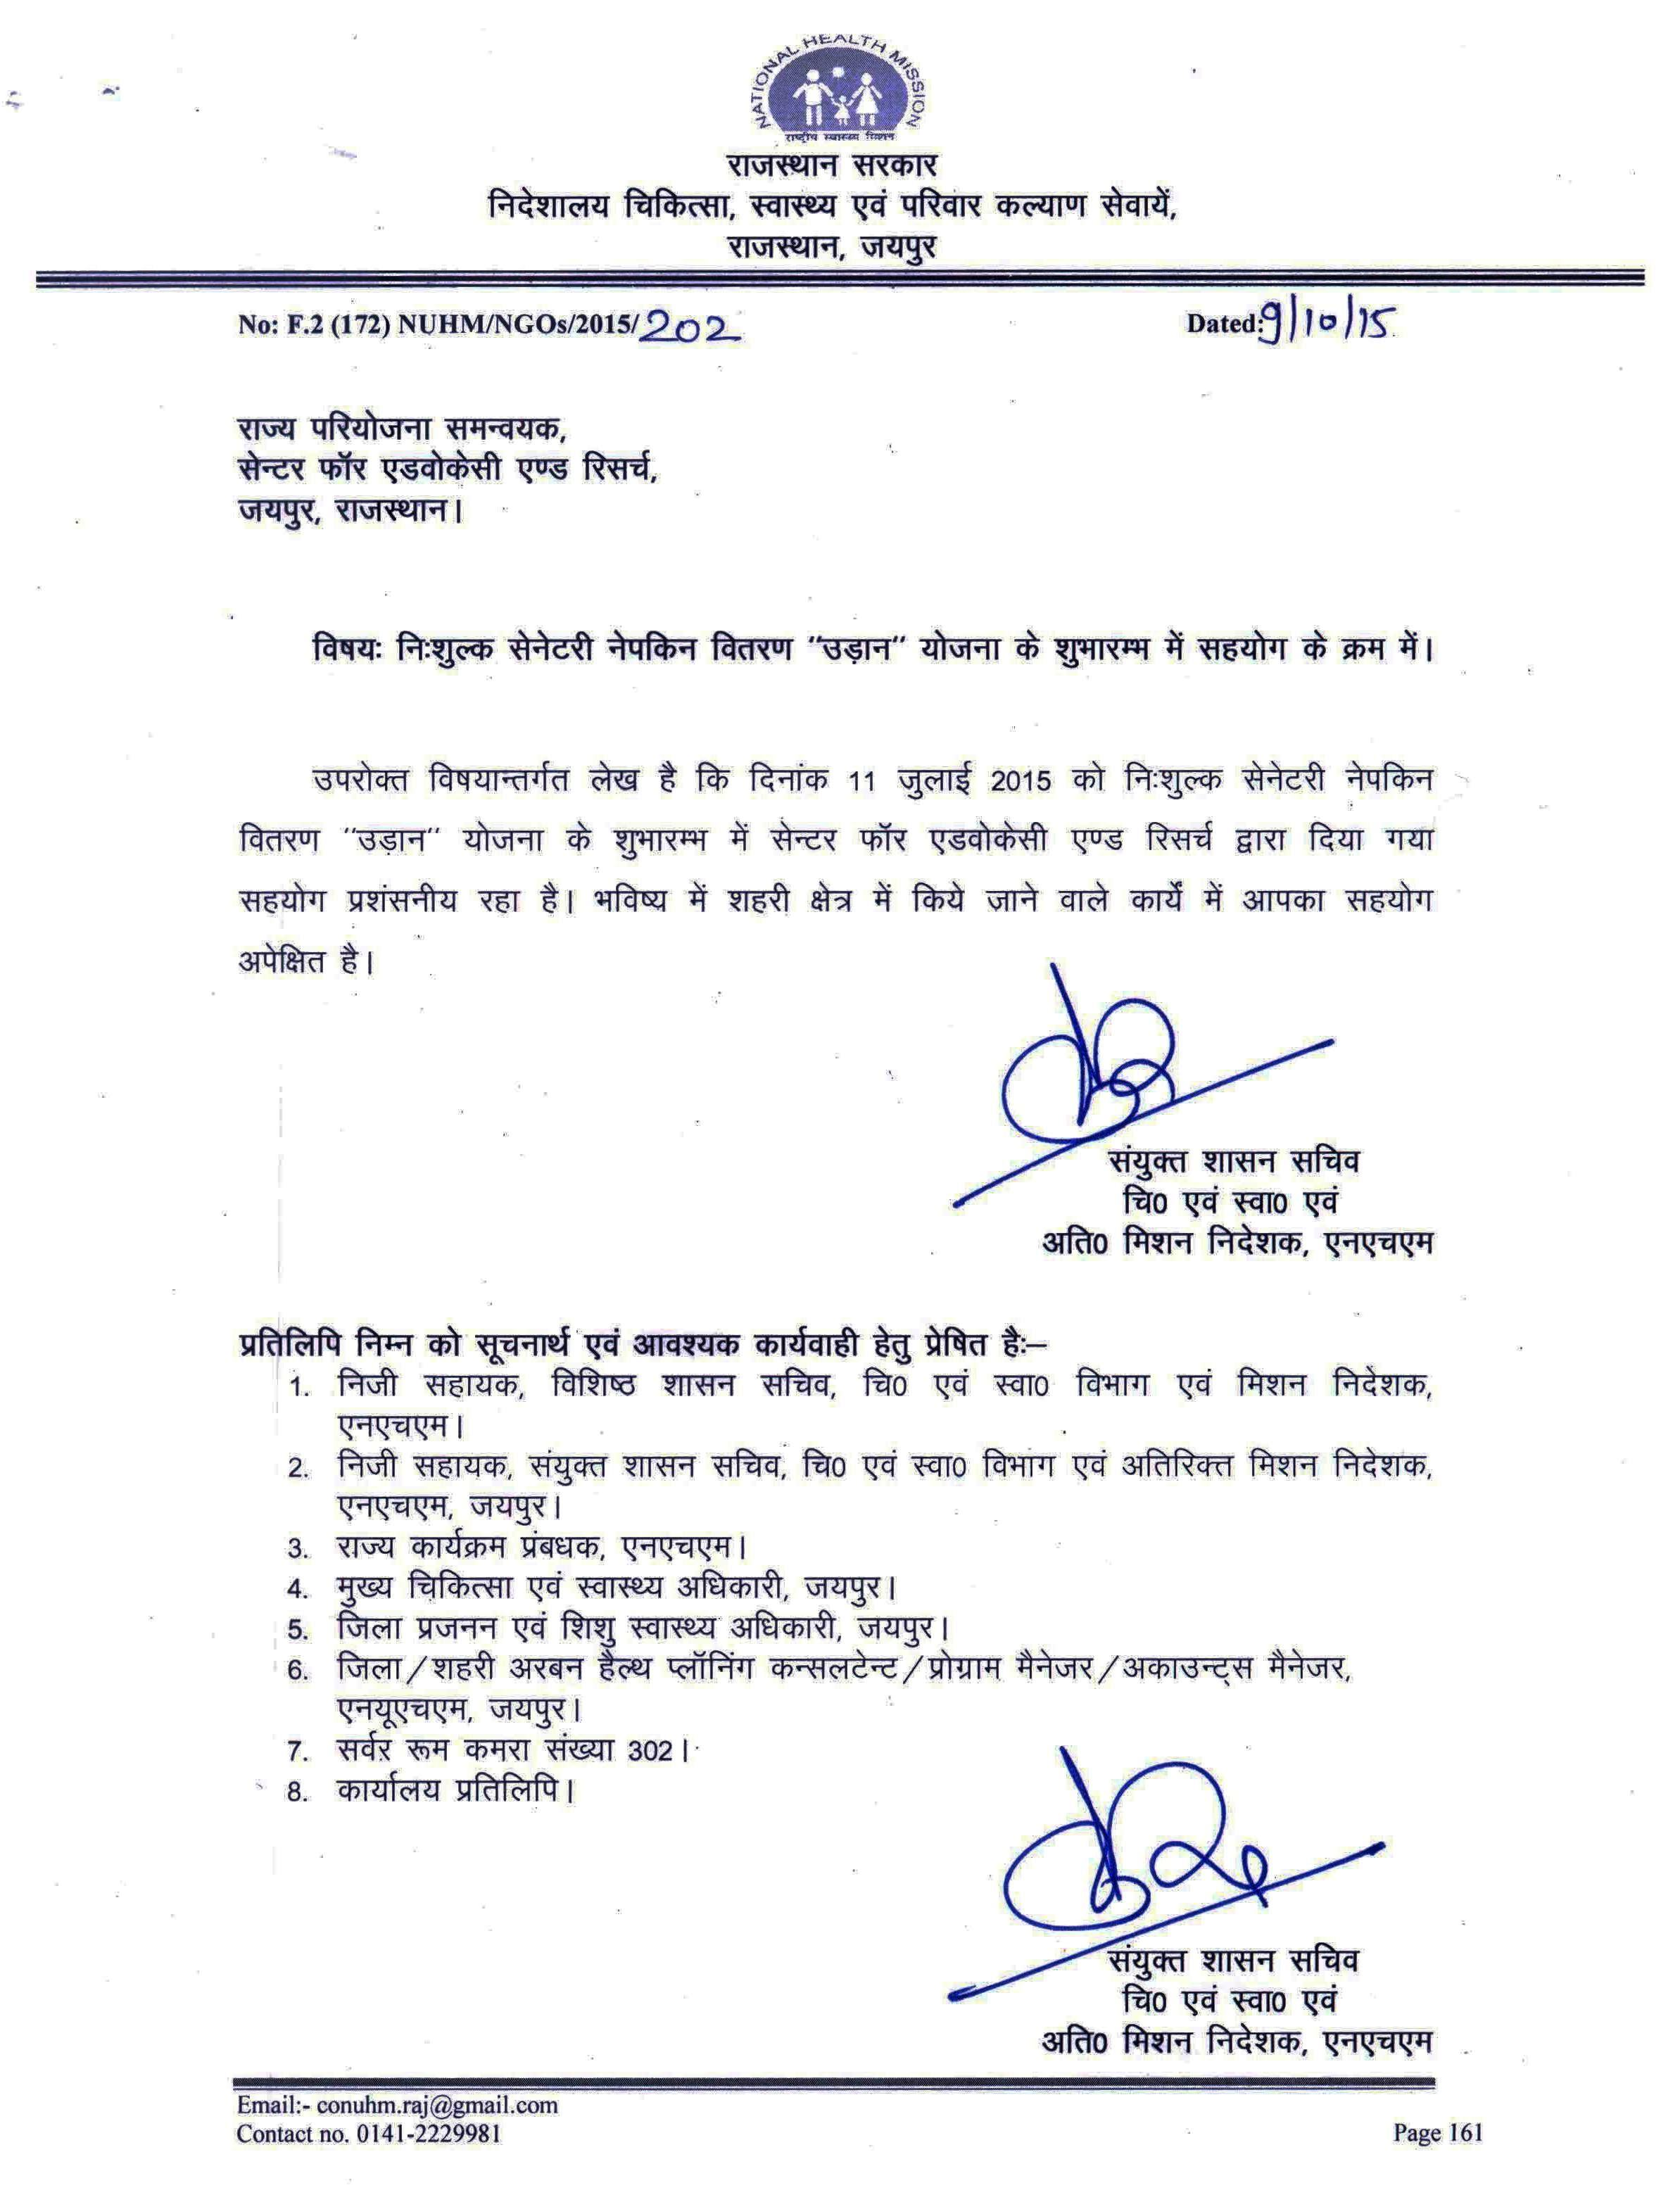 "On July 11, 2015 CFAR received Letter of Appreciation for participation in ""Udaan Yojana"" programme or Free Distribution of Sanitary Napkins"